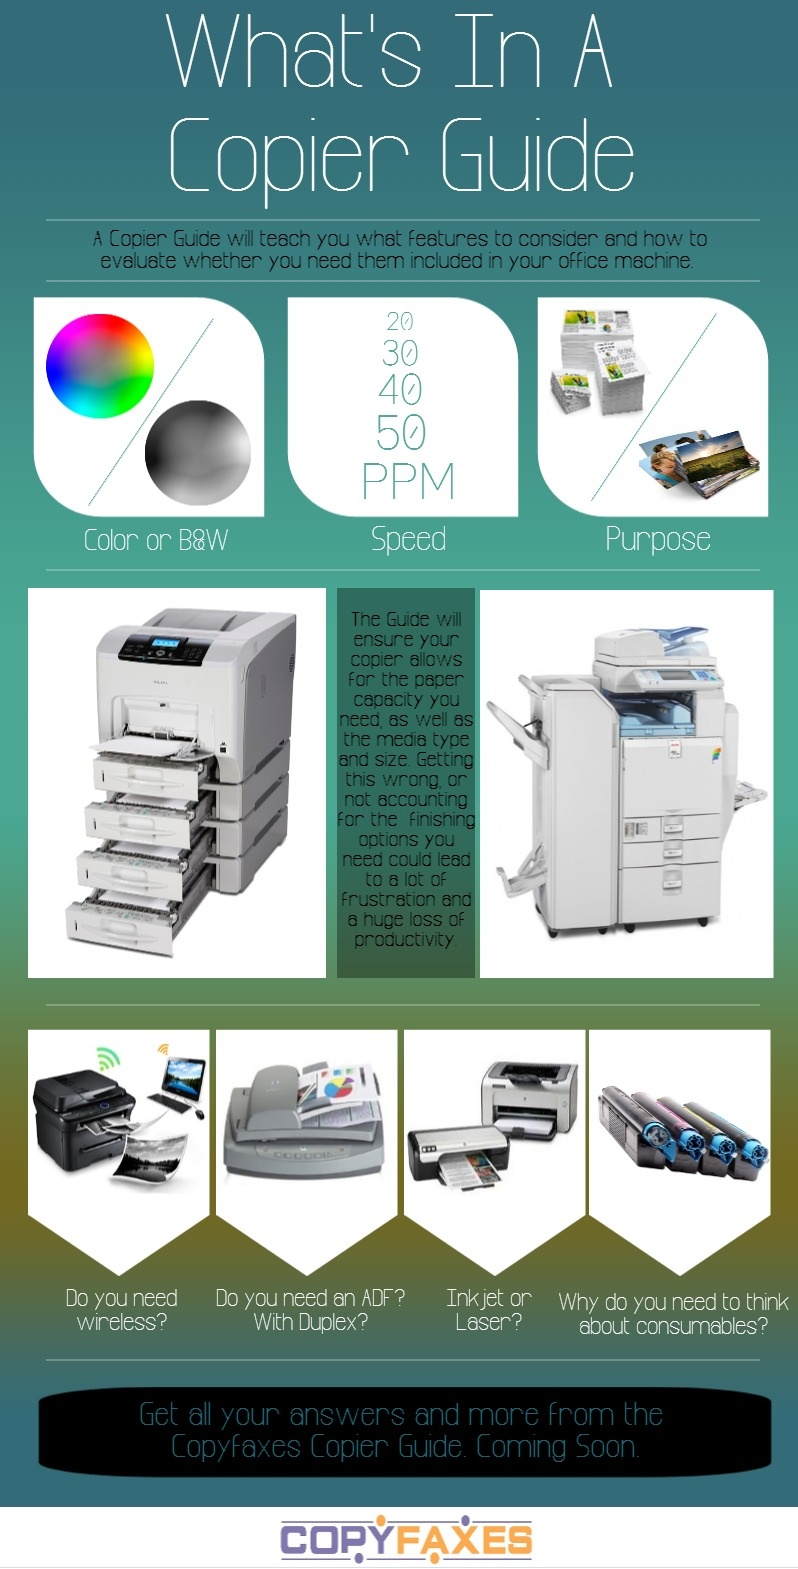 What's In A Copier Guide